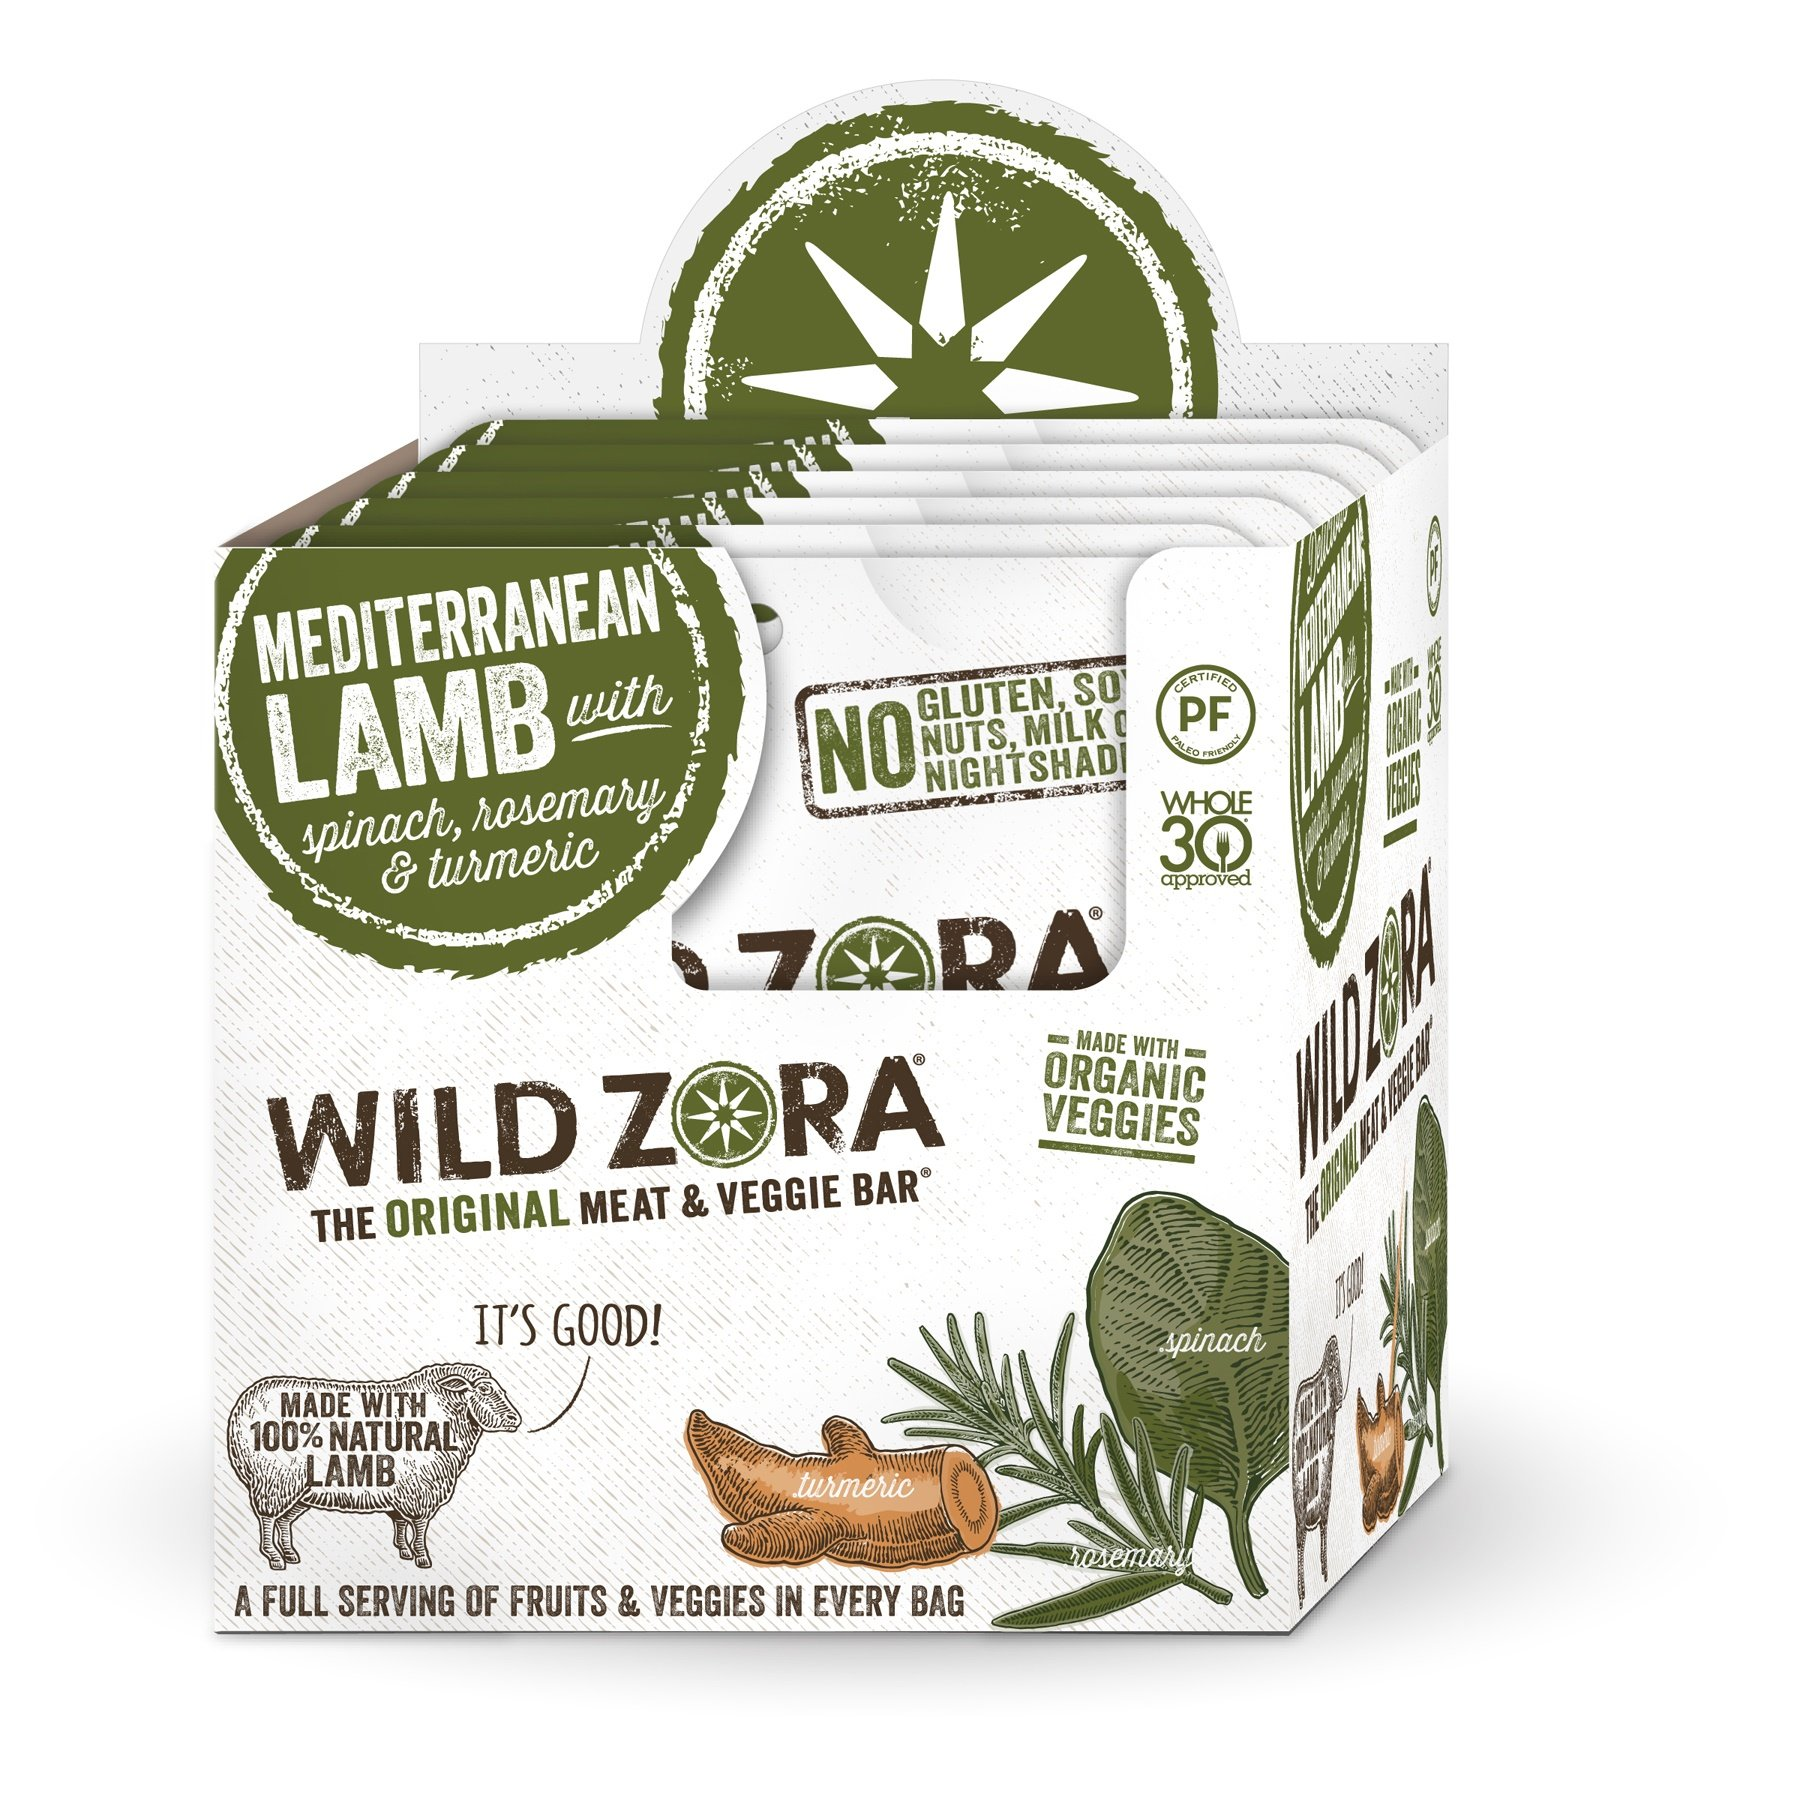 Mediterranean Lamb - Meat and Veggie Bars (10-pack) are the perfect AIP snack. They contain no nightshades and are grain-free, dairy-free and Paleo Certified. They contain no tree nuts or any other.